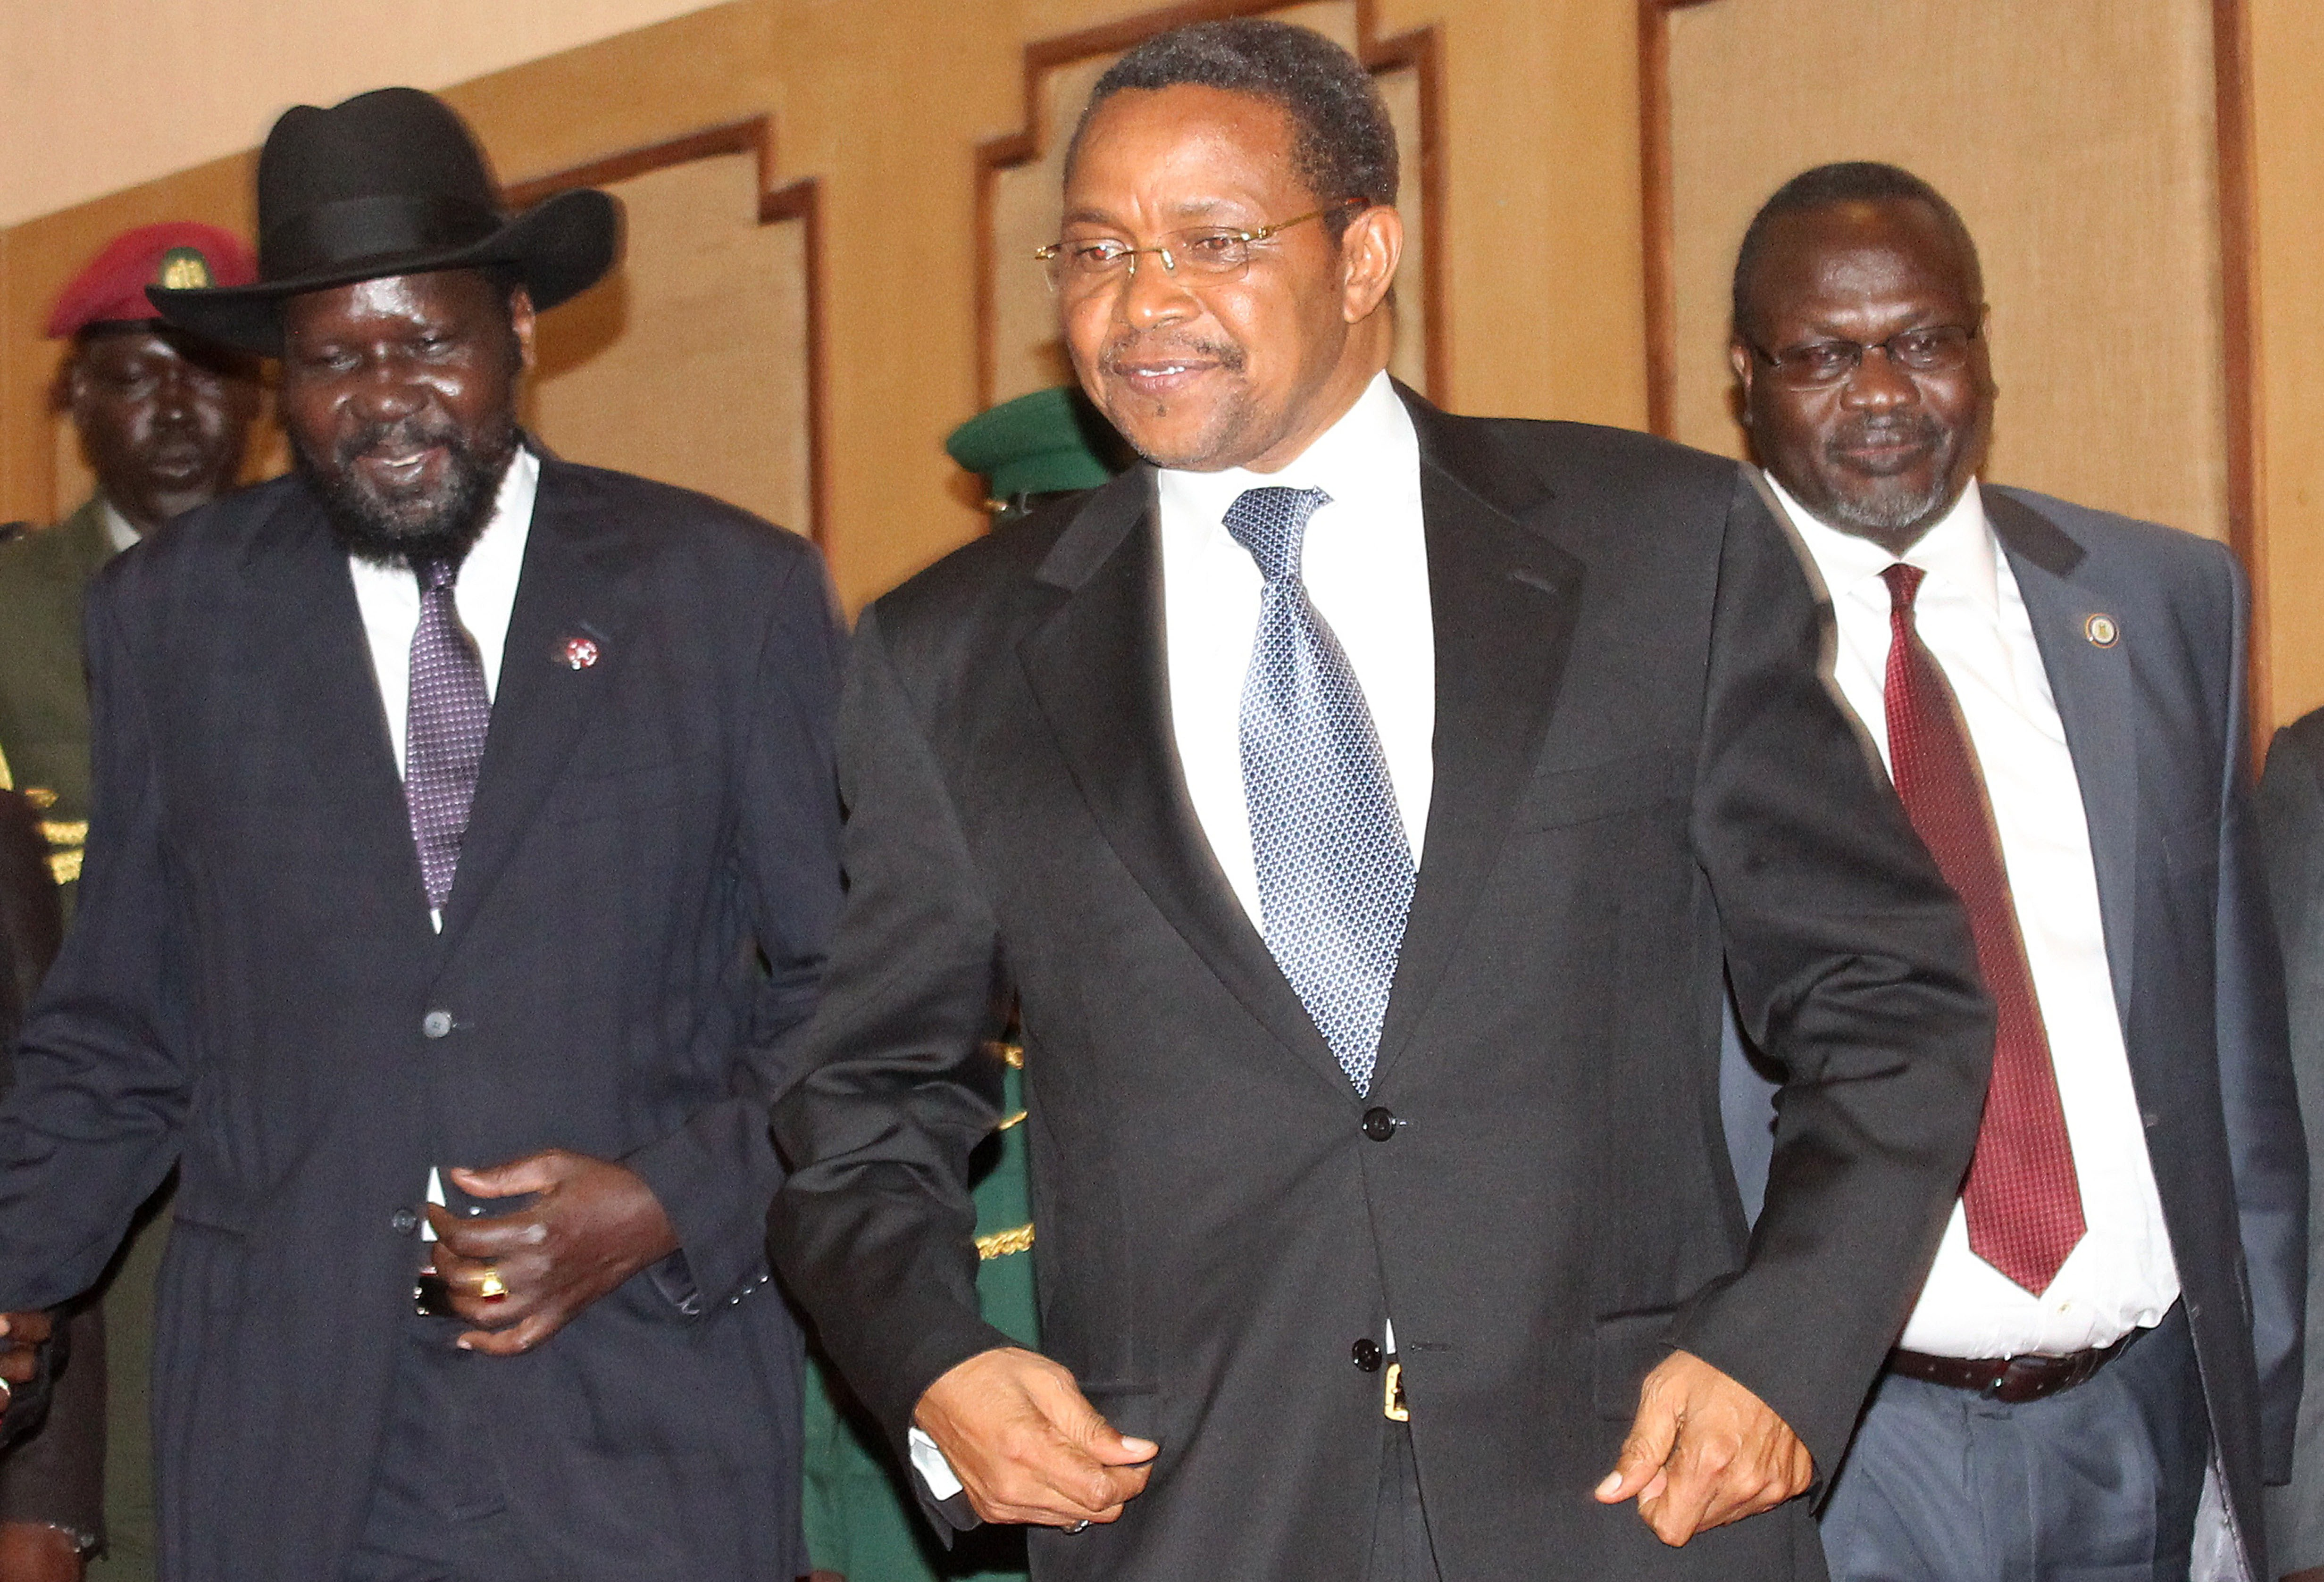 South Sudan's President Salva Kiir, left; Tanzania's President Jakaya Kikwete, center; and South Sudanese rebel leader Riek Machar, right, pose during talks on Oct. 20, 2014, in the northern Tanzanian tourist town of Arusha